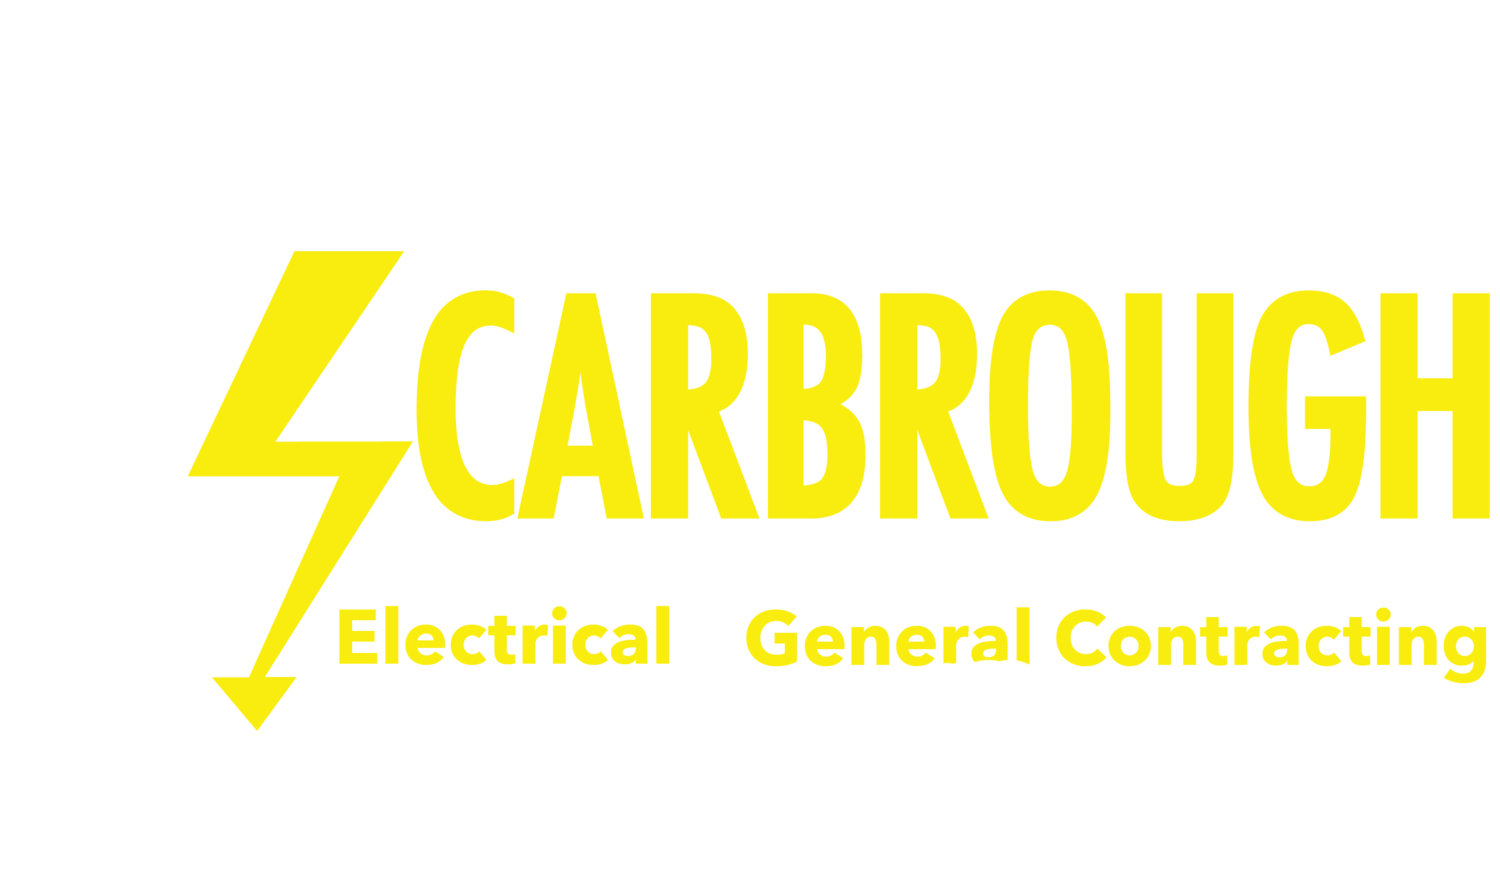 Scarbrough Contracting, LLC